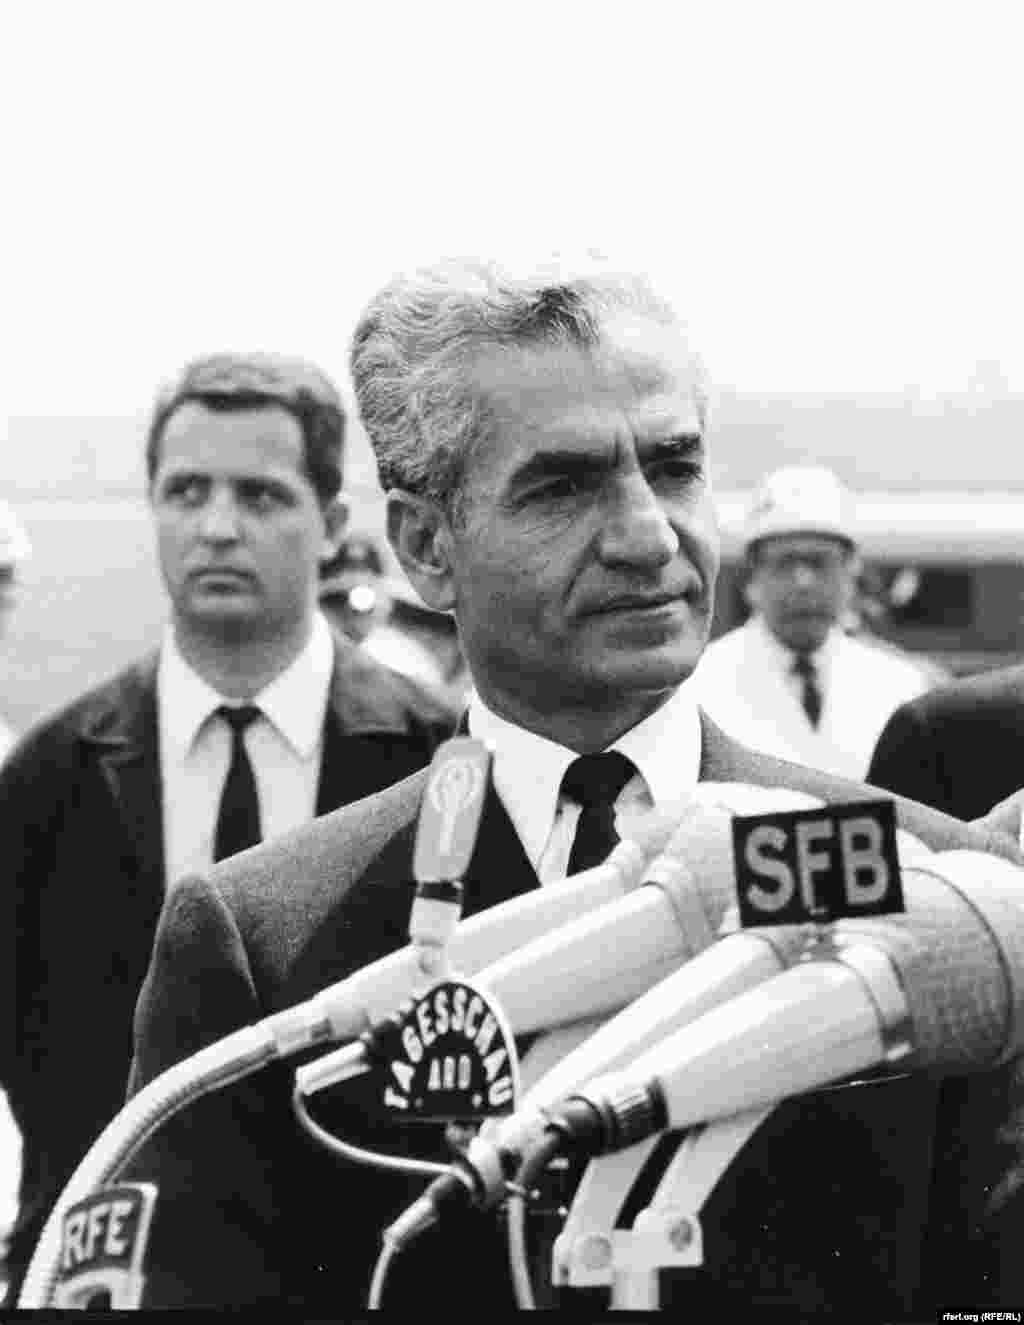 Shah of Iran speaks into a RFE microphone during a 1968 diplomatic trip to Berlin . - Shah of Iran speaks into a RFE microphone during a 1968 diplomatic trip to Berlin .